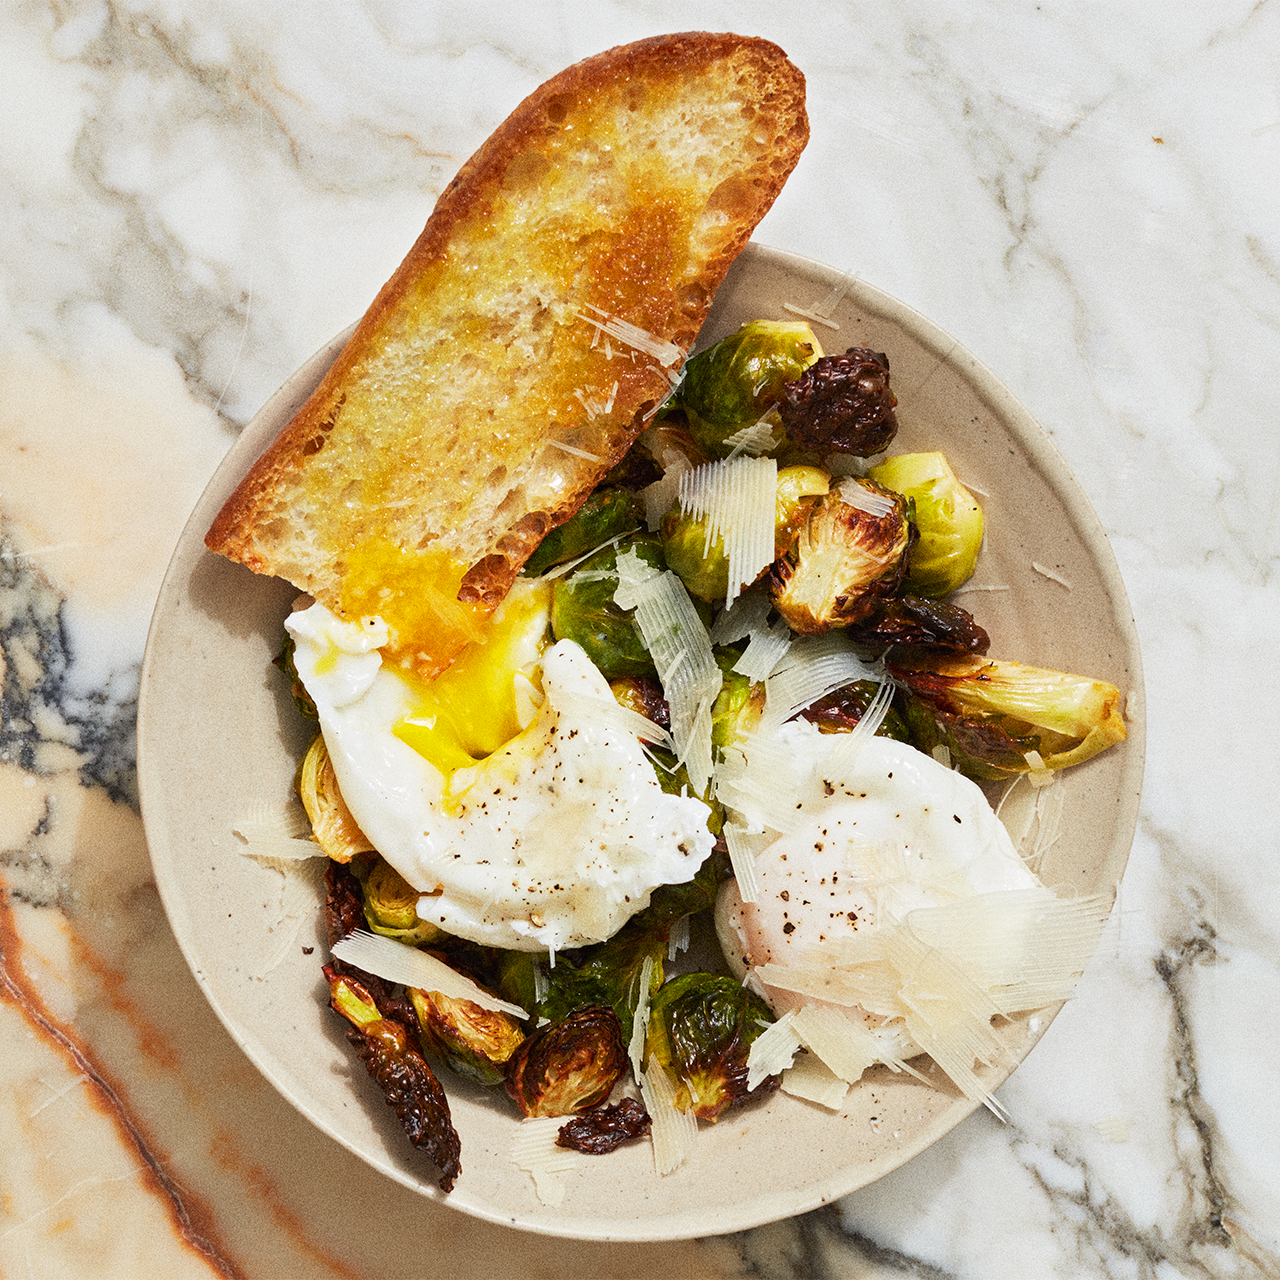 poached egg with brussels sprouts and parmesan